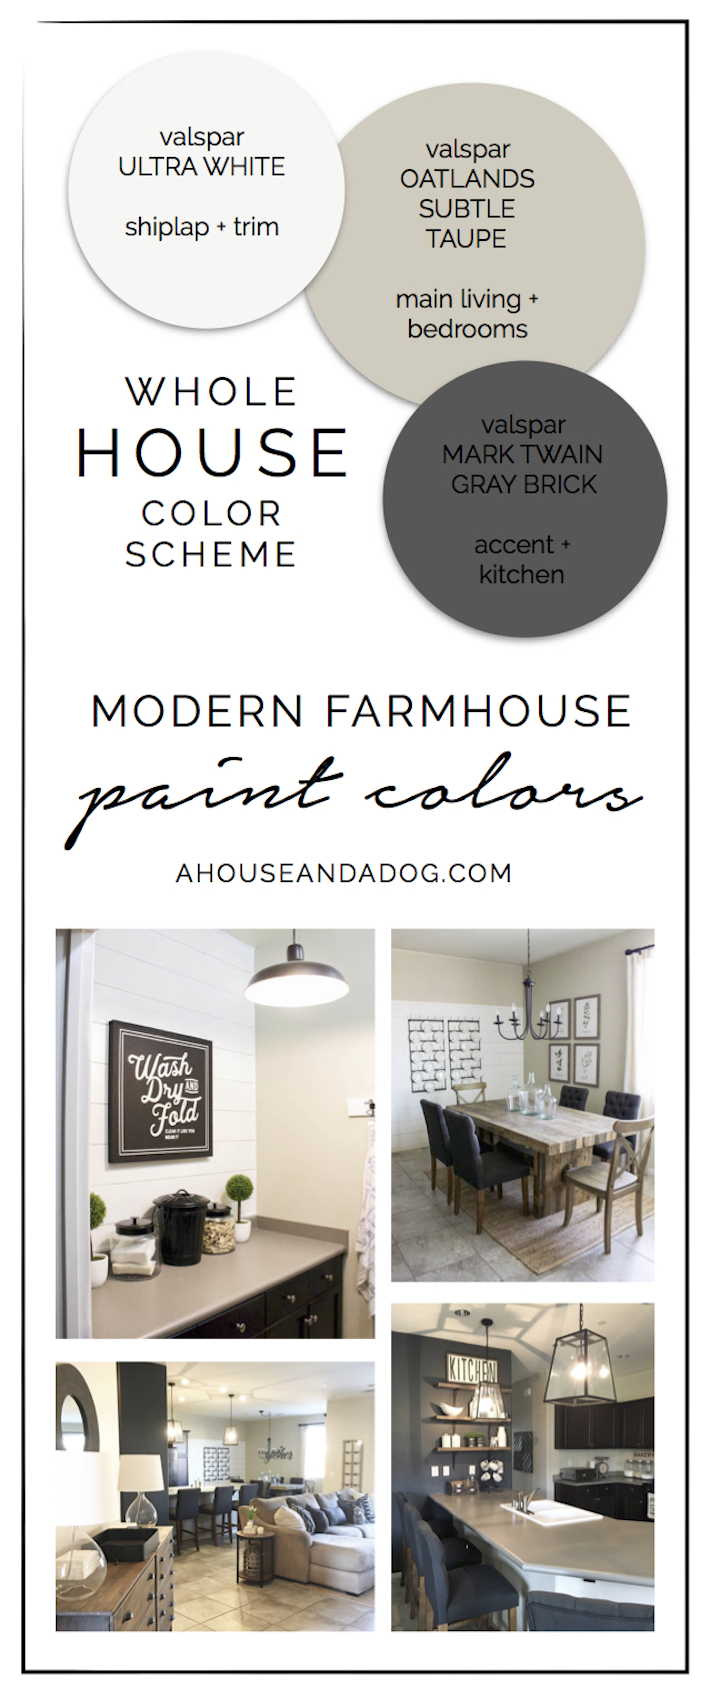 Whole house color scheme paint colors hello allison - Whole house interior paint palette ...